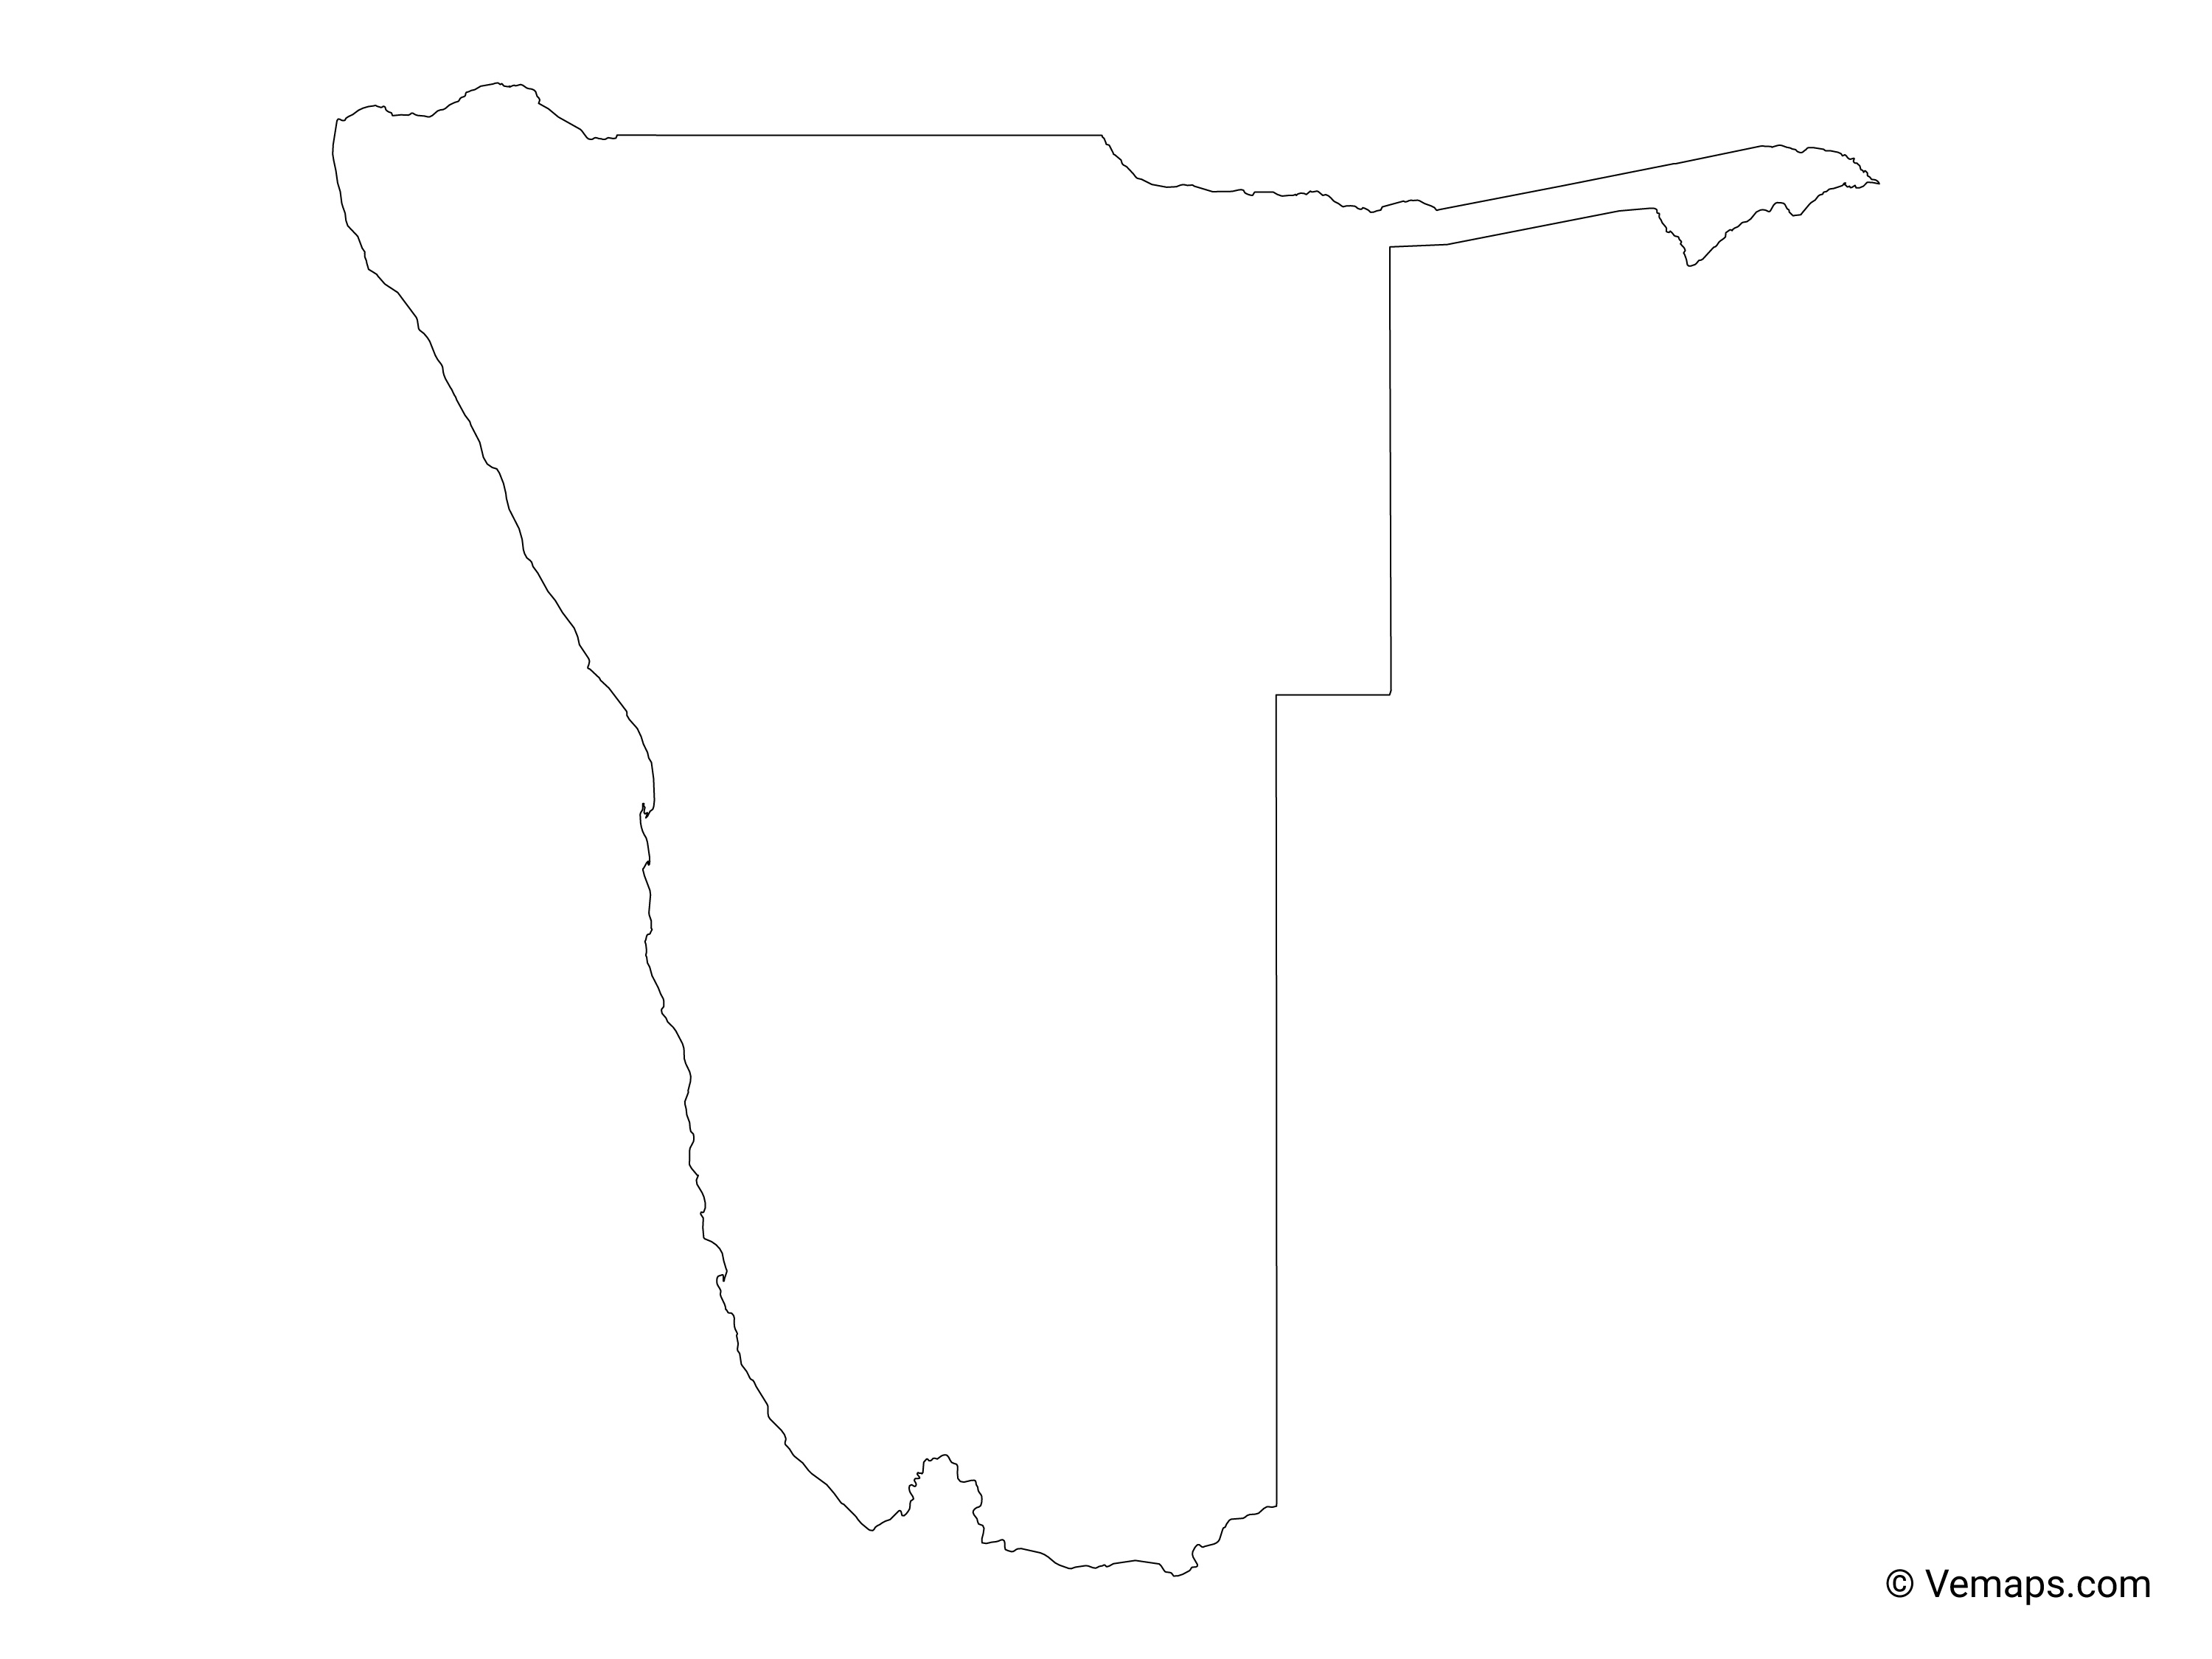 Outline Map of Namibia | Free Vector Maps